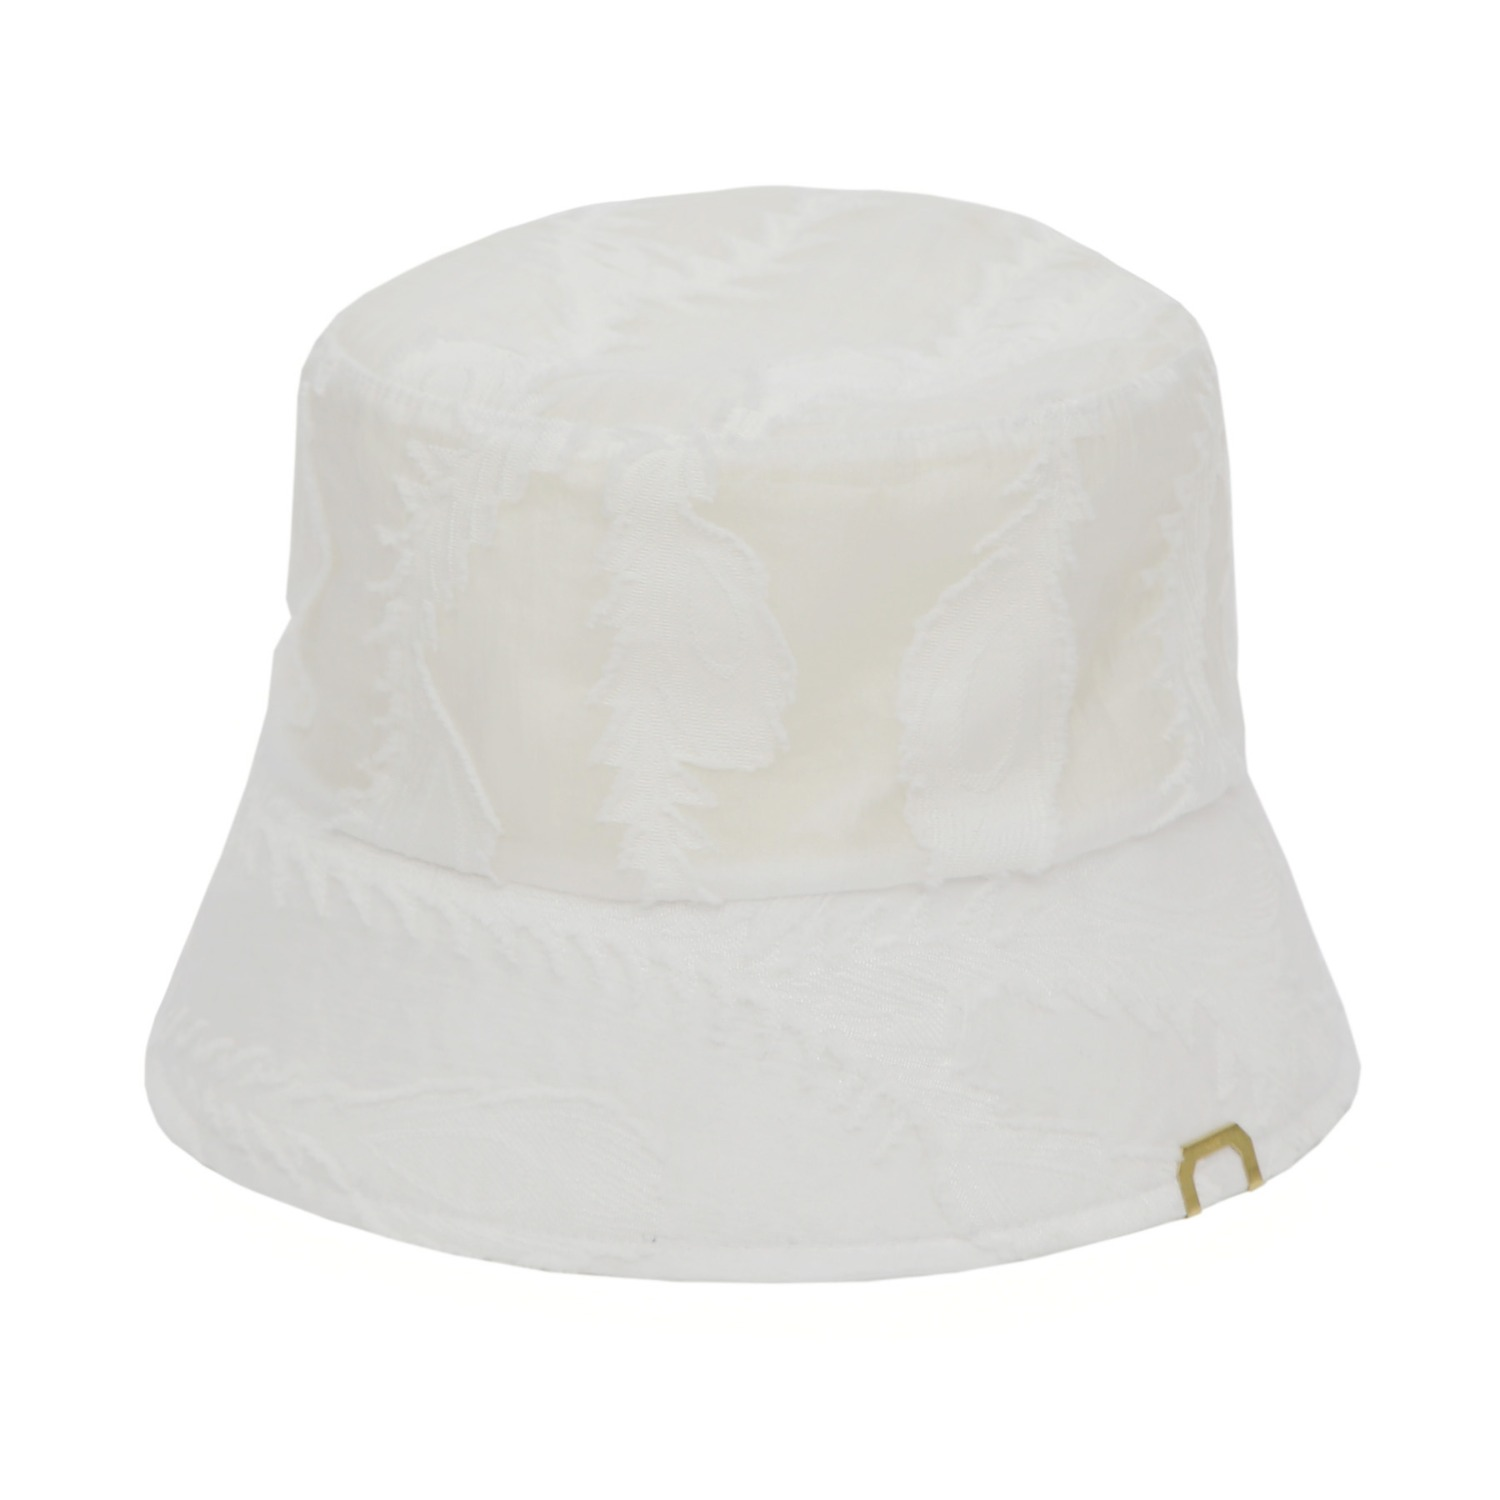 PLAIN BUCKET / J LACE / P WHITE